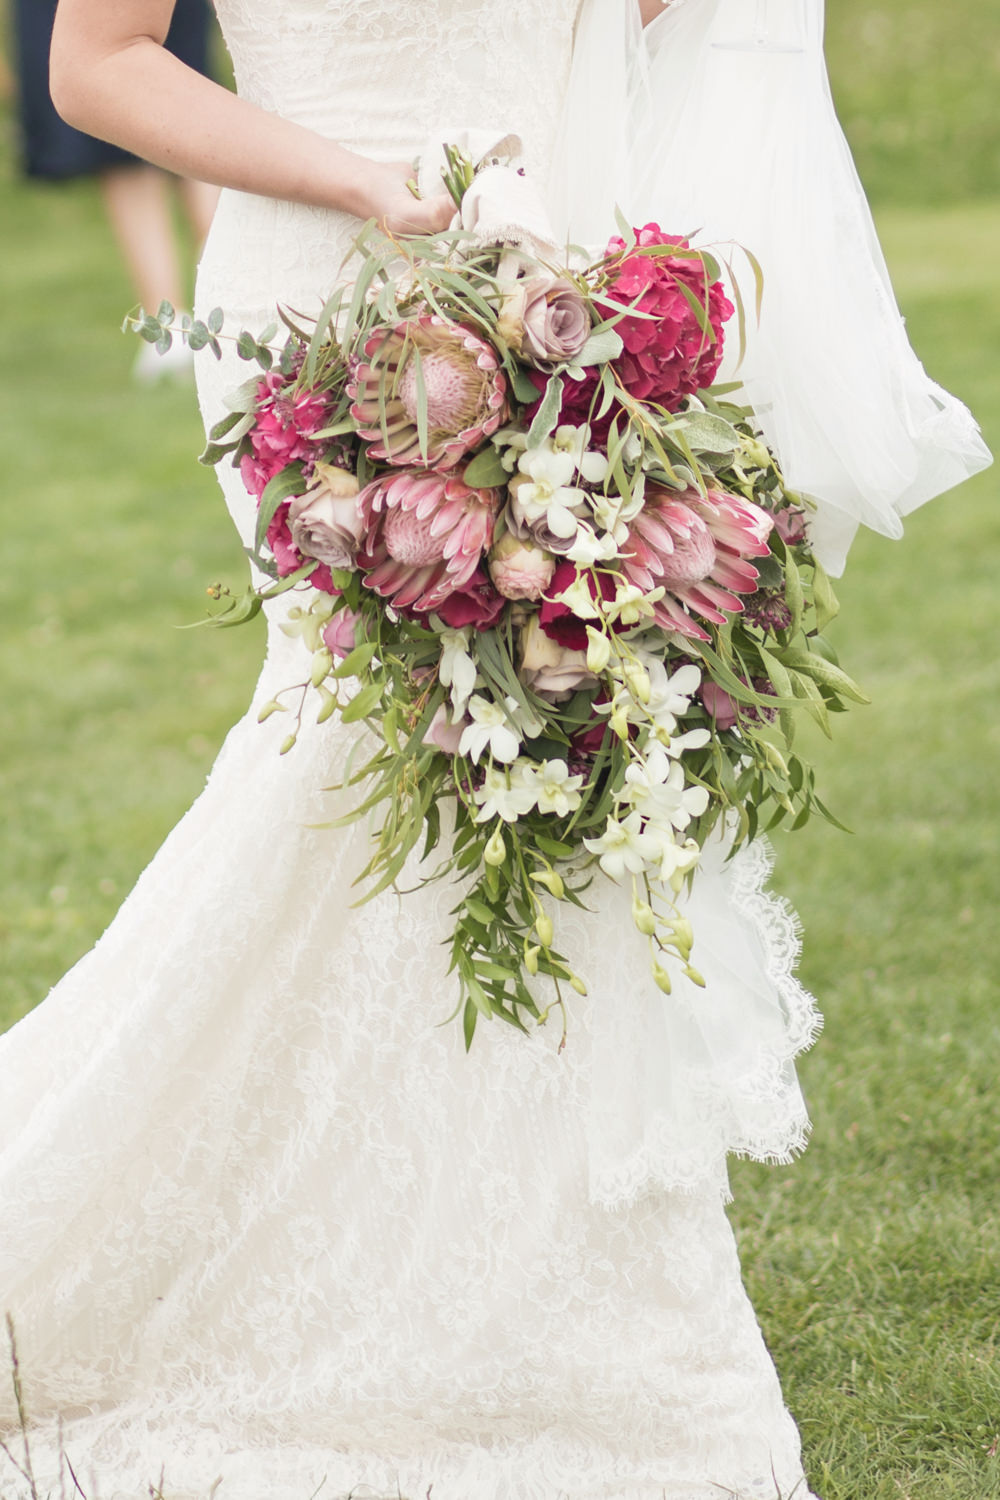 Flowers Bouquet Bride Bridal Red Pink Protea Hydrangea Rose Greenery House Meadow Wedding Kerry Ann Duffy Photography